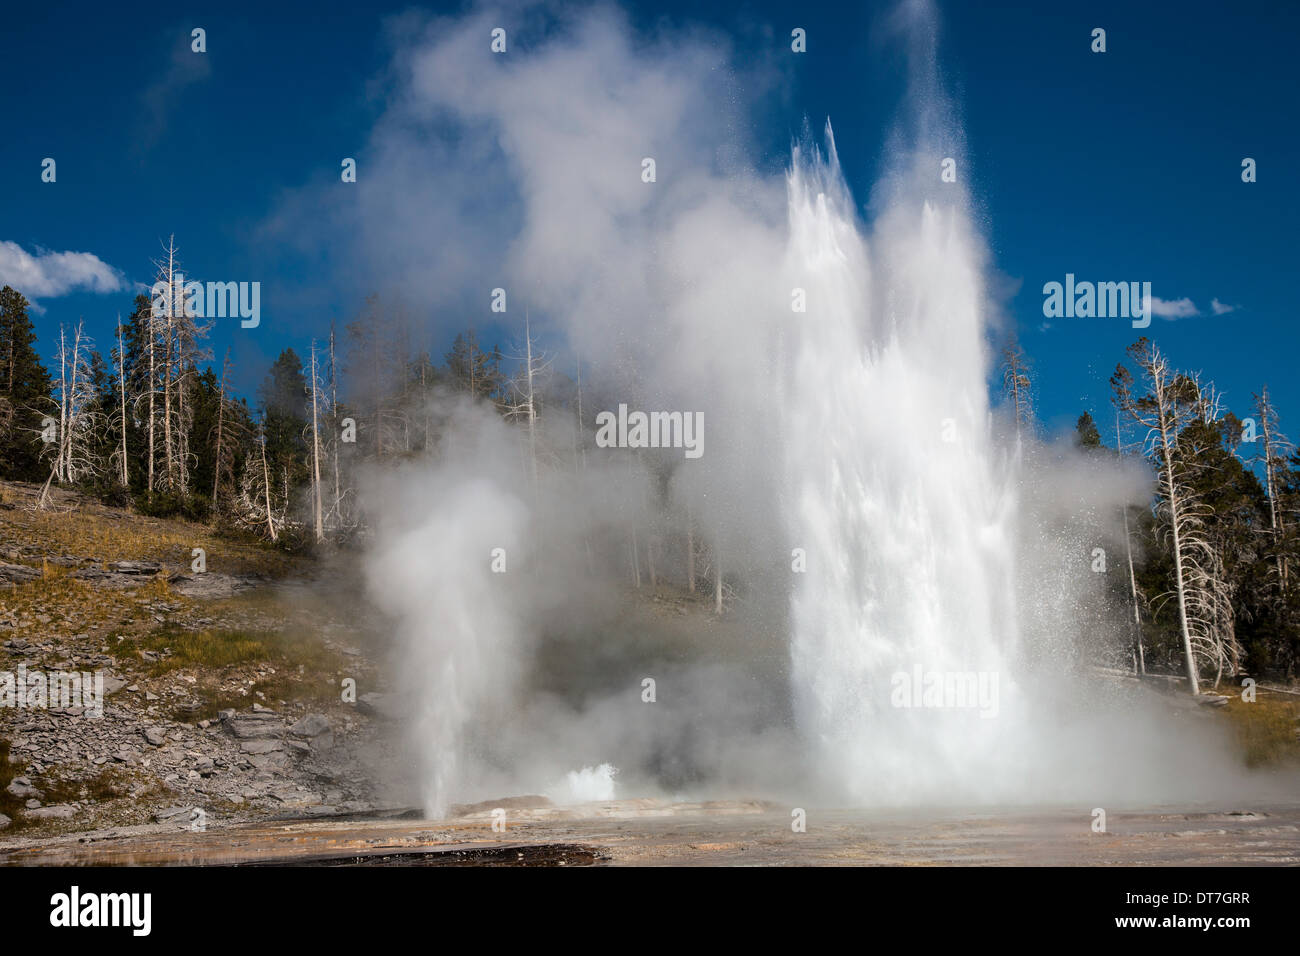 Grand, Turban, and Vent geysers - Stock Image